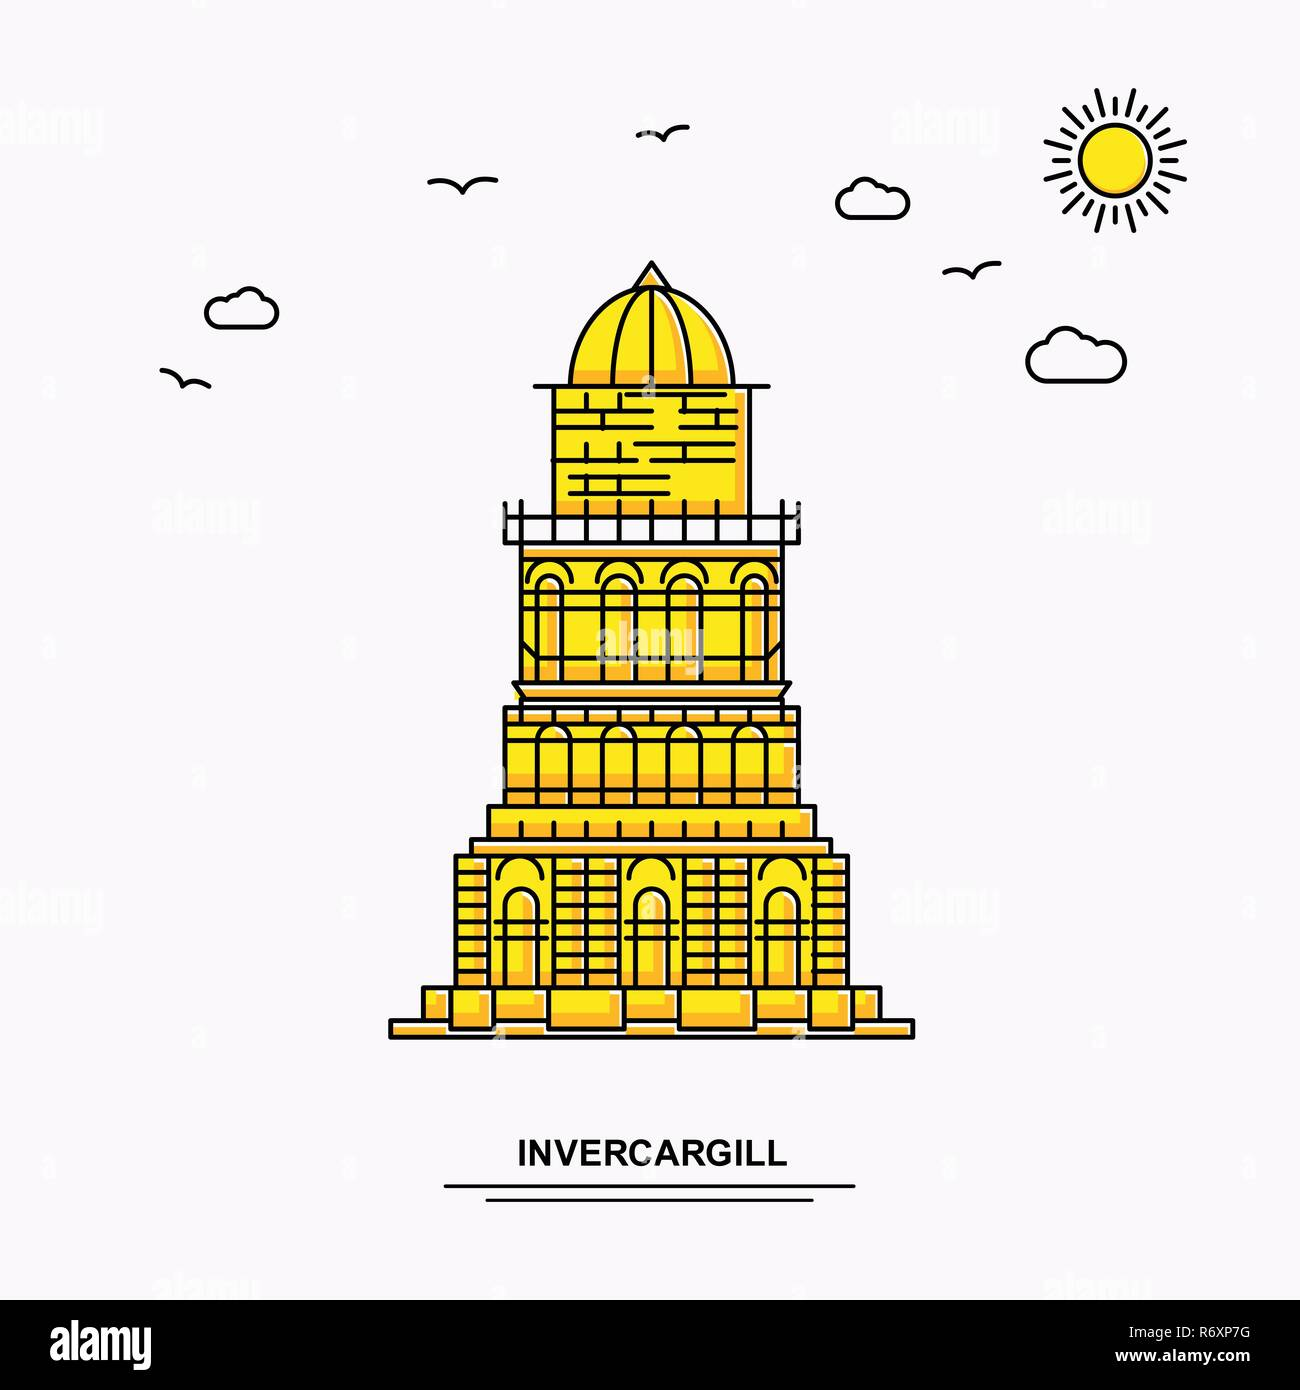 Invercargill Monument Poster Template World Travel Yellow Illustration Background In Line Style With Beauture Nature Scene Stock Vector Image Art Alamy